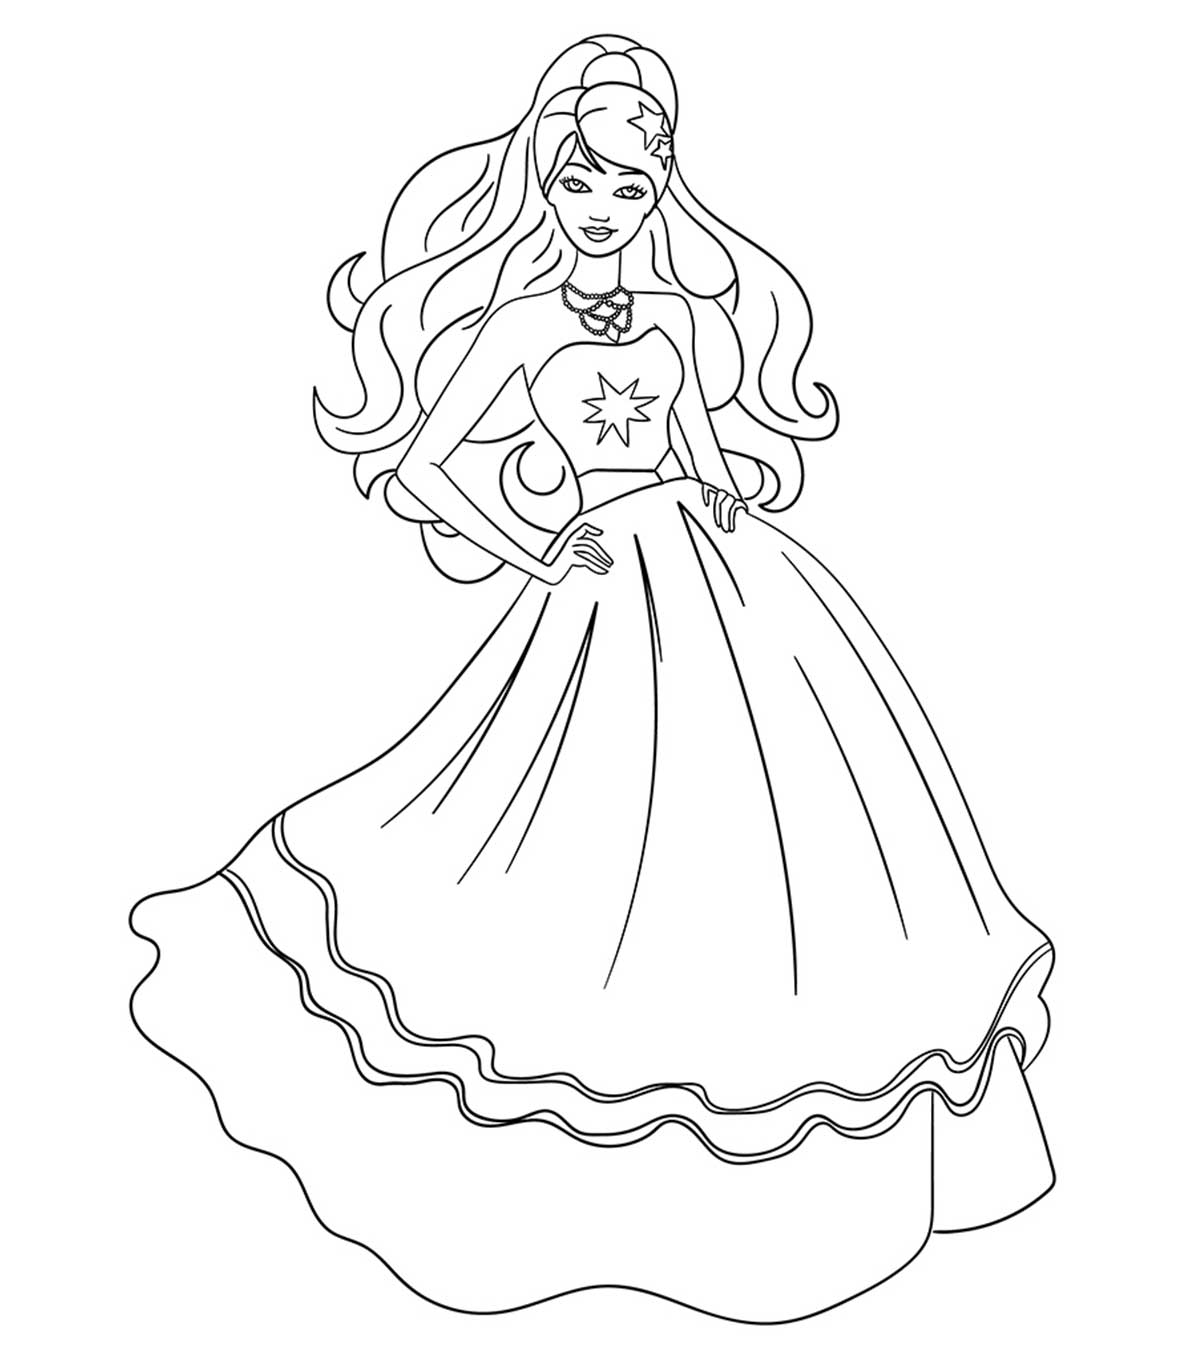 Top 50 Free Printable Barbie Coloring Pages Online